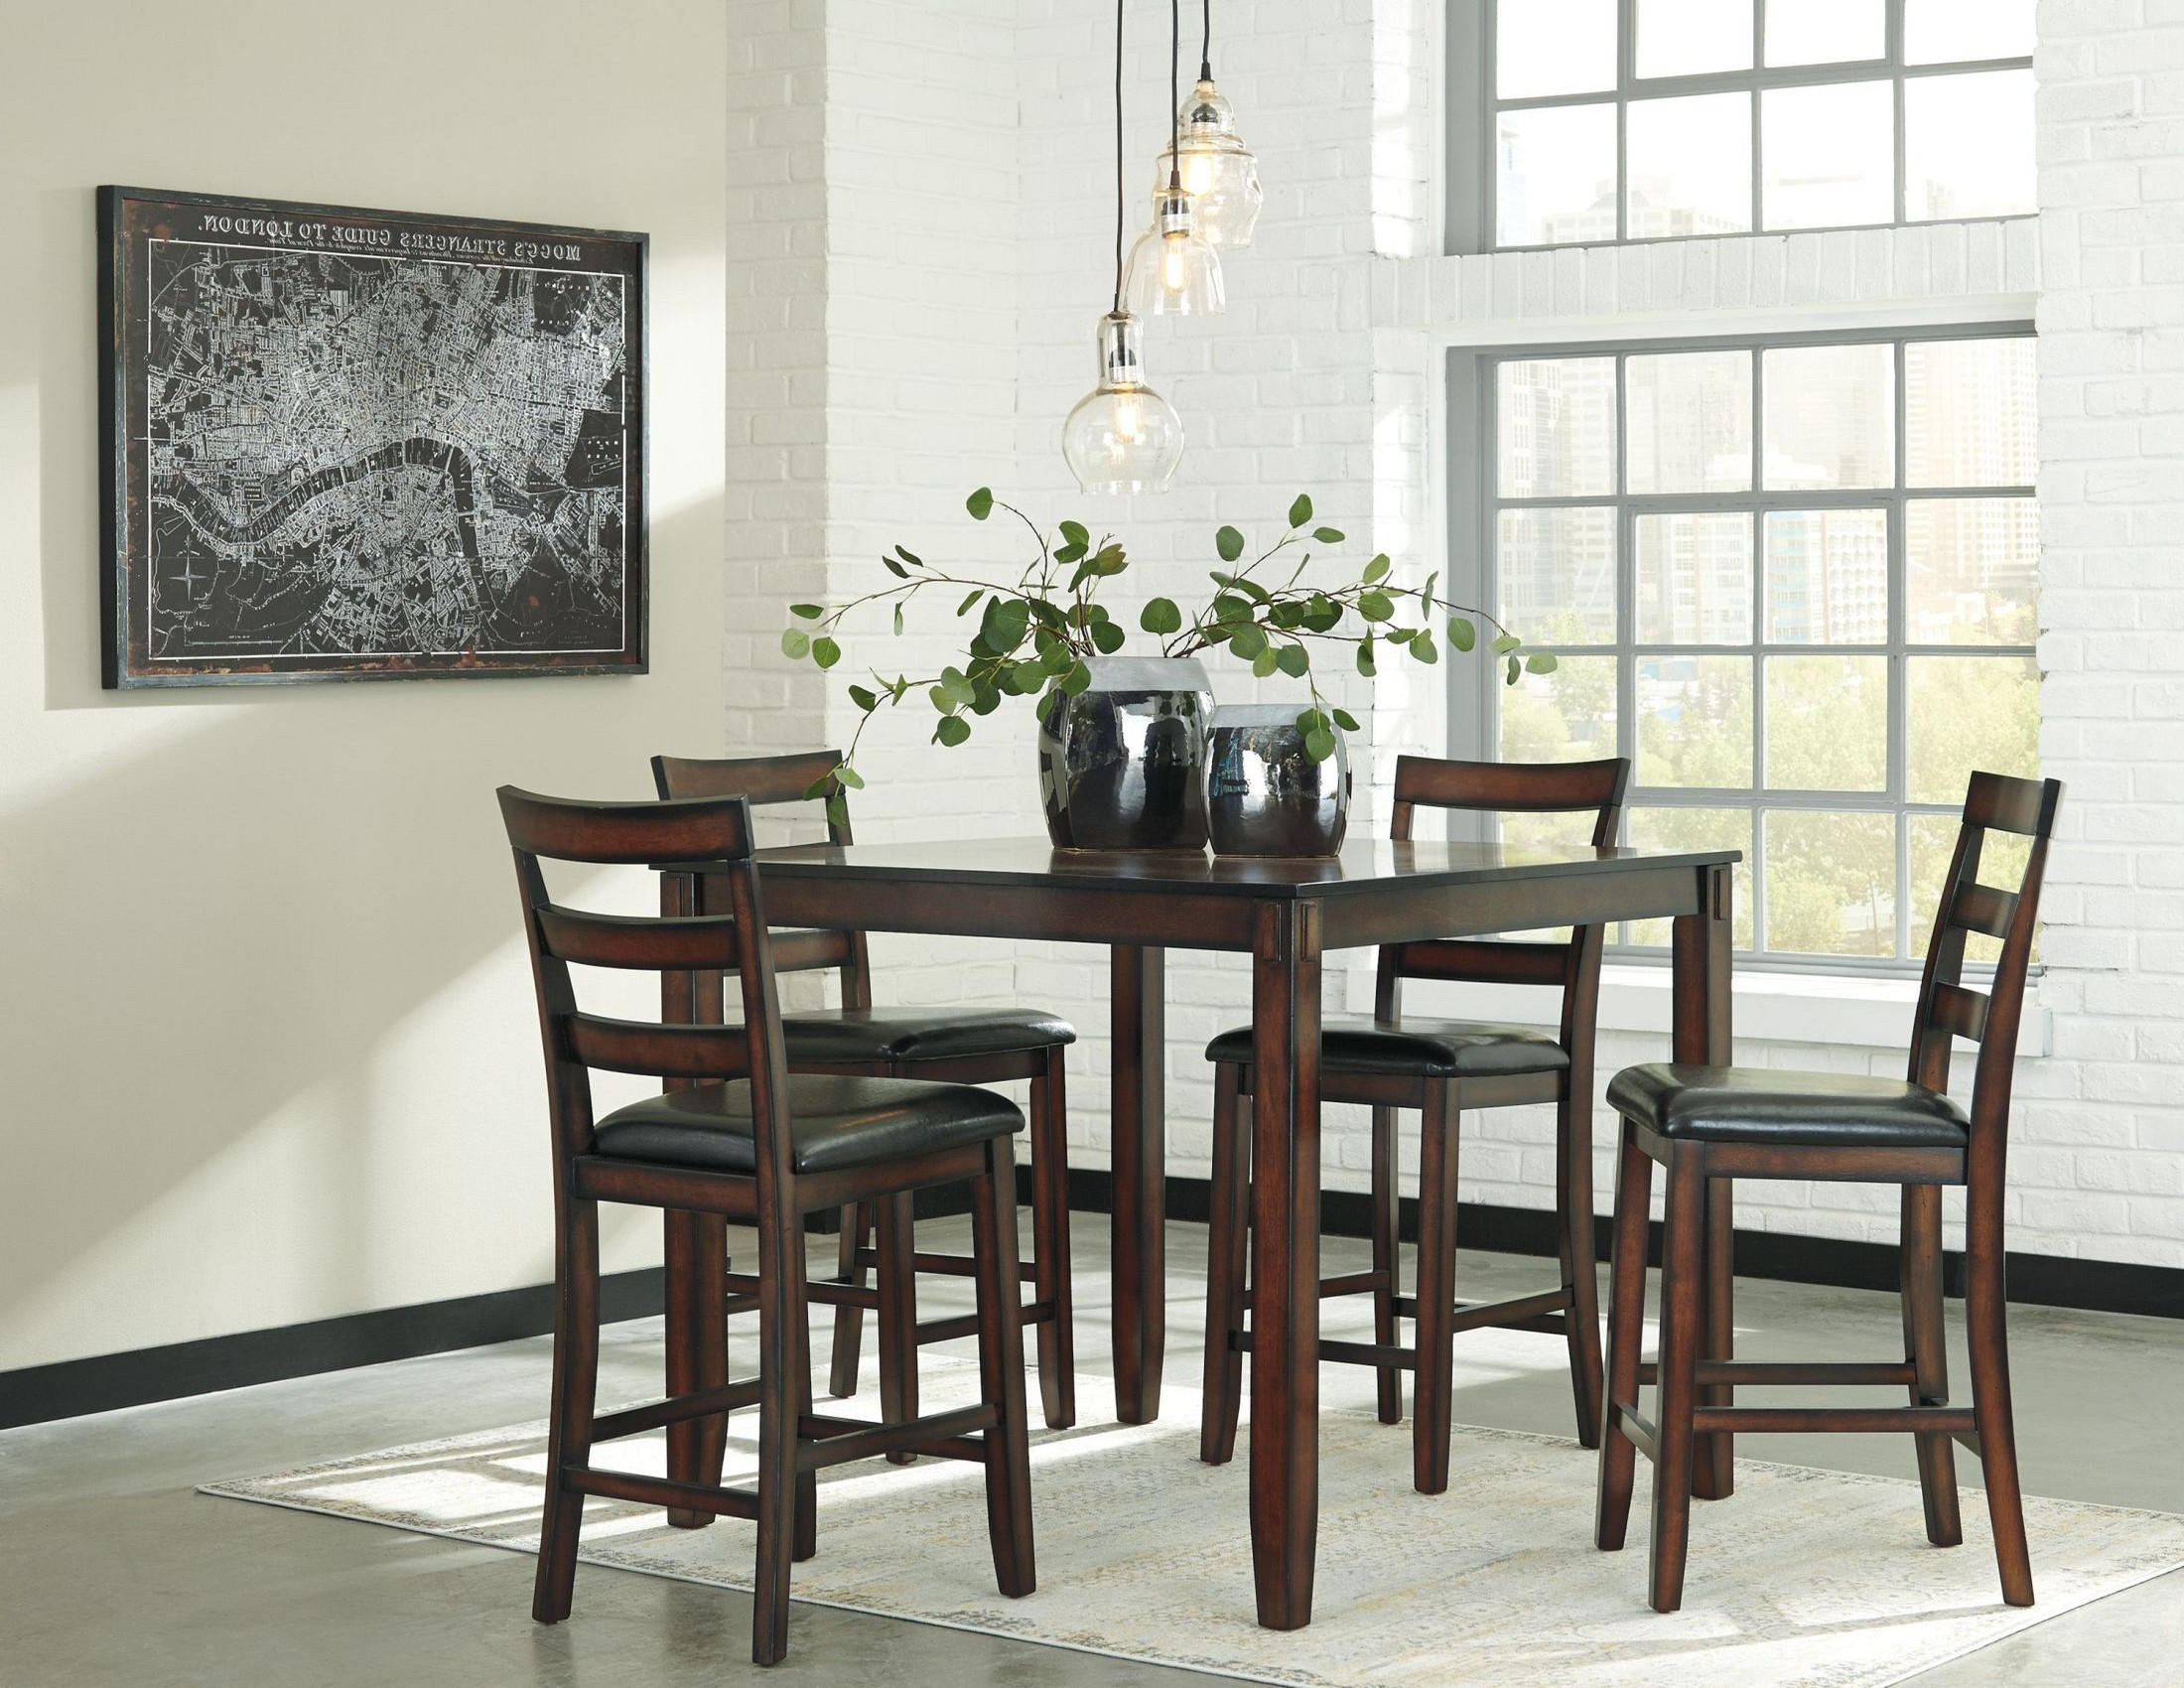 Lonon 3 Piece Dining Sets Pertaining To Most Recently Released Coviar Brown 5 Piece Counter Height Dining Room Set From Ashley (View 15 of 25)